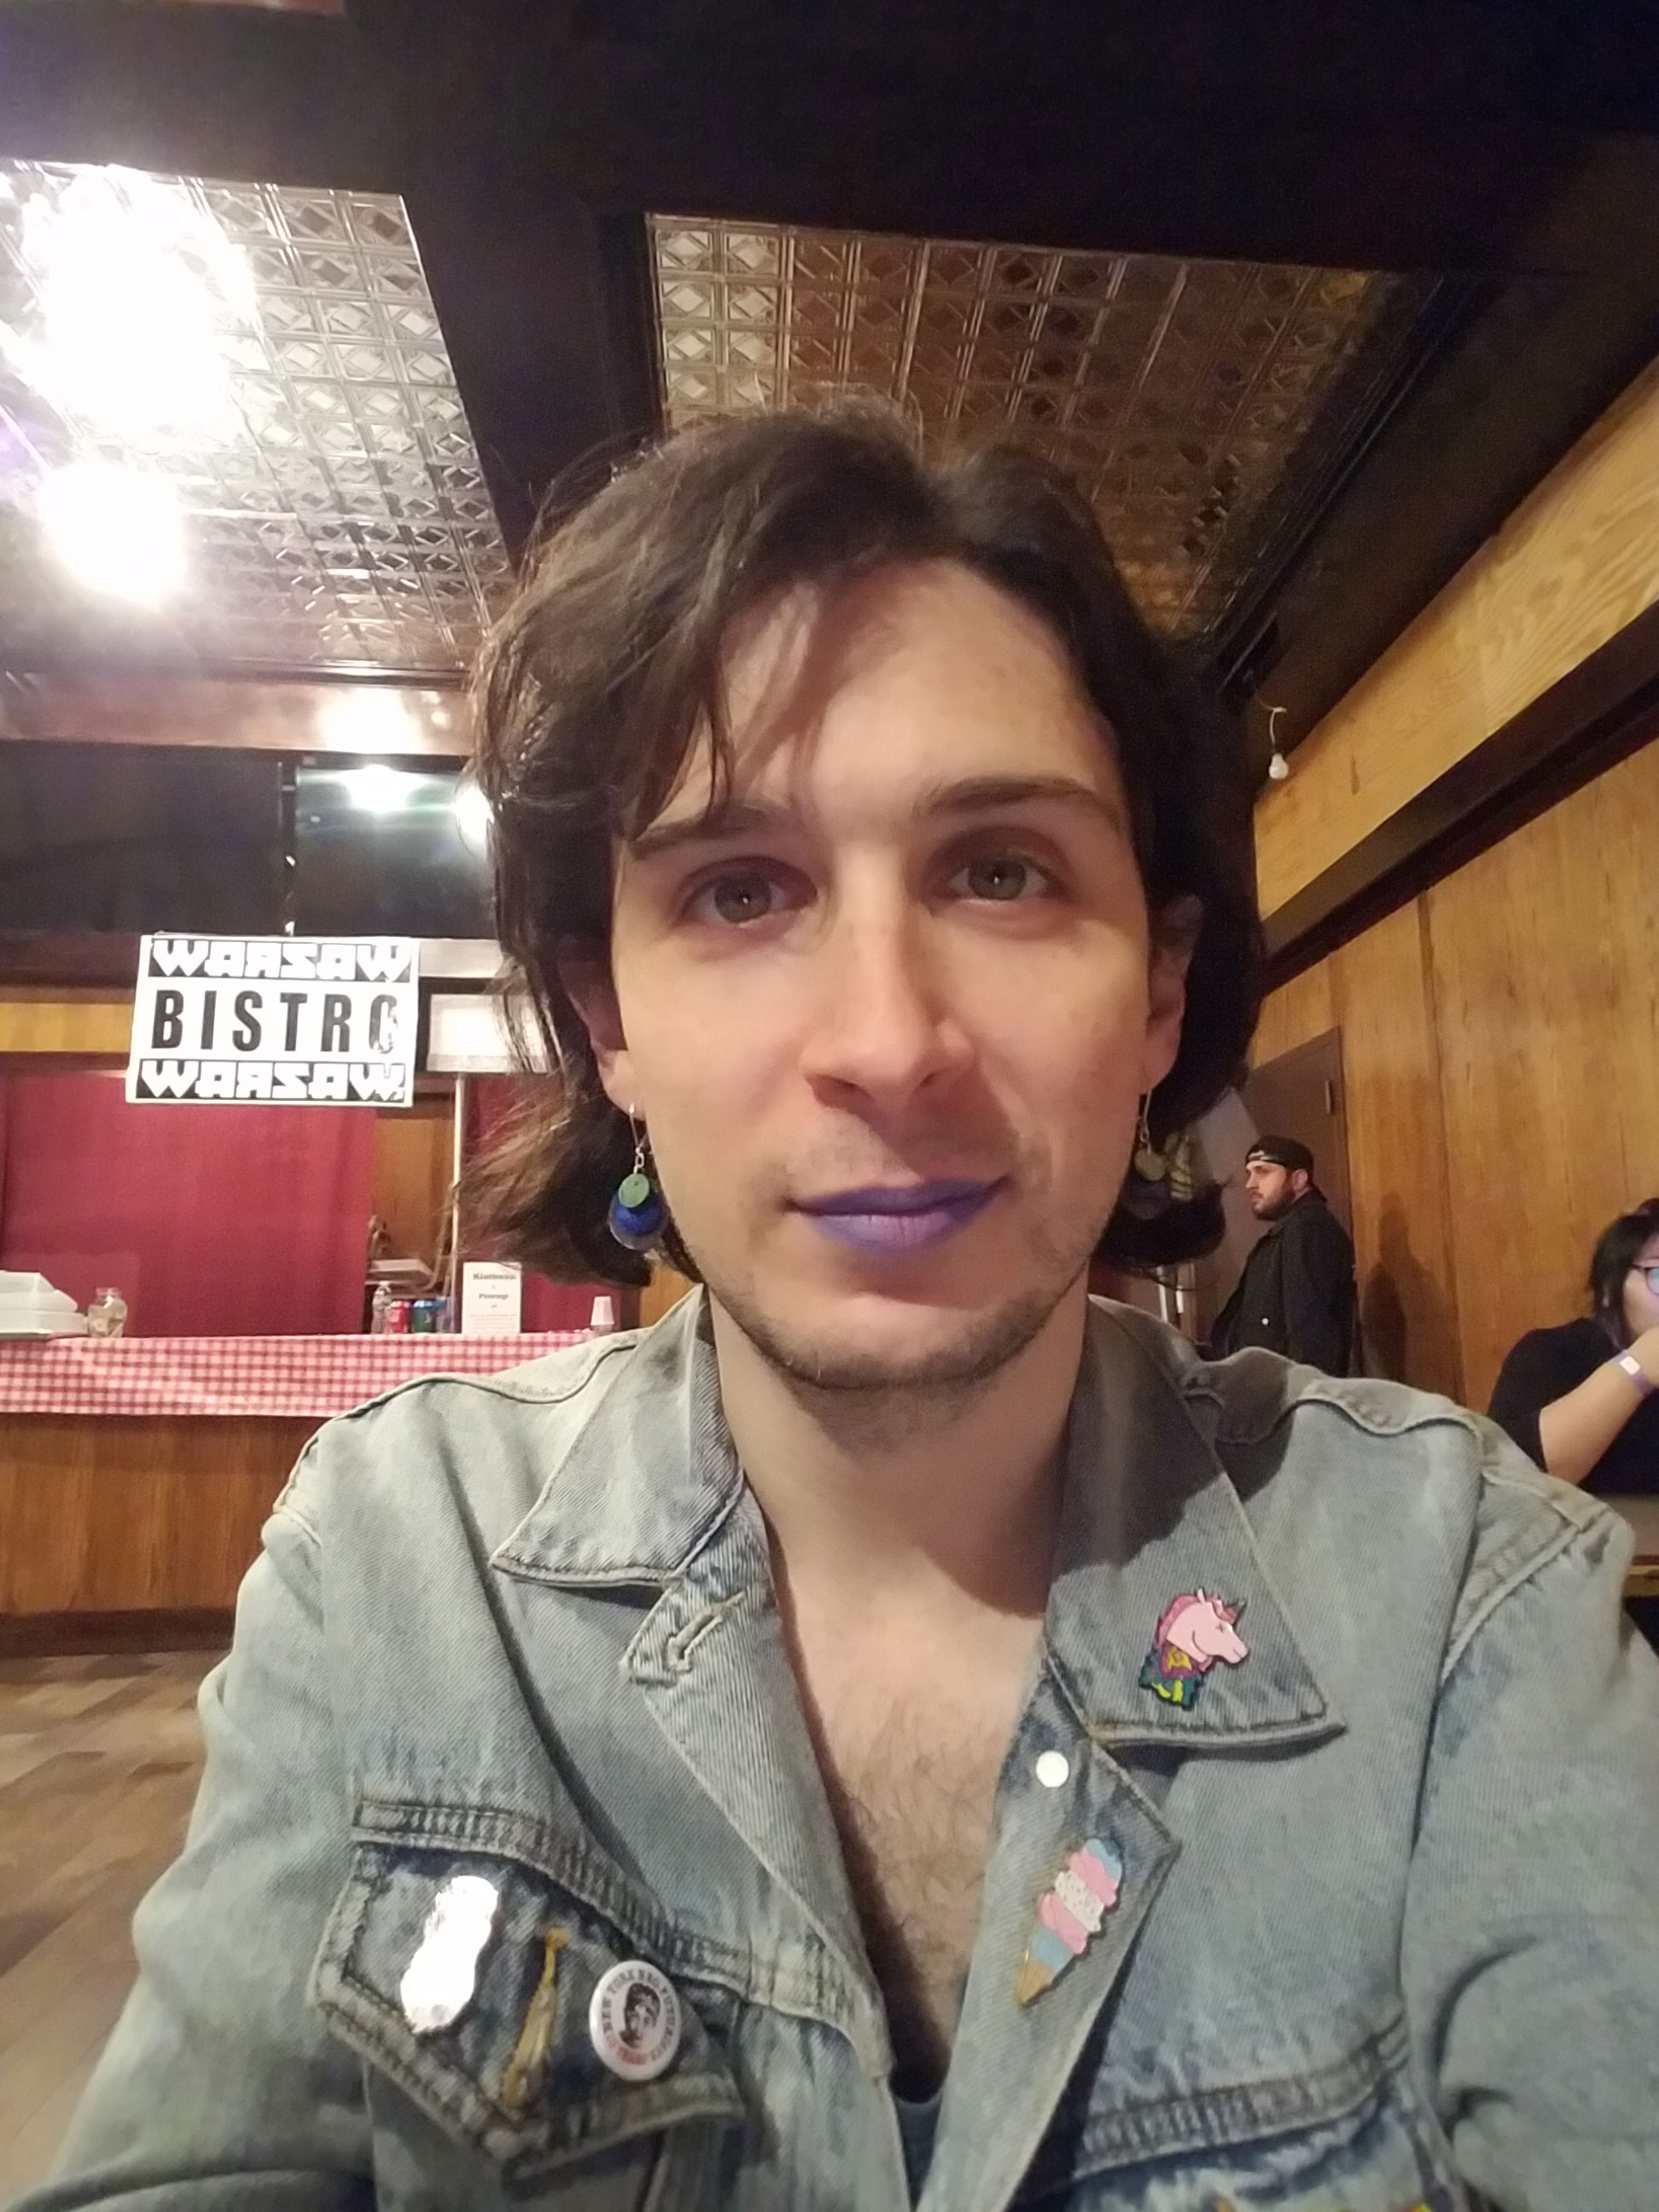 "An indoor selfie of a person in a denim jacket with enamel pins on its lapels. Behind them are tables with people eating and a food counter. A sign reads ""WARSAW BISTRO""."